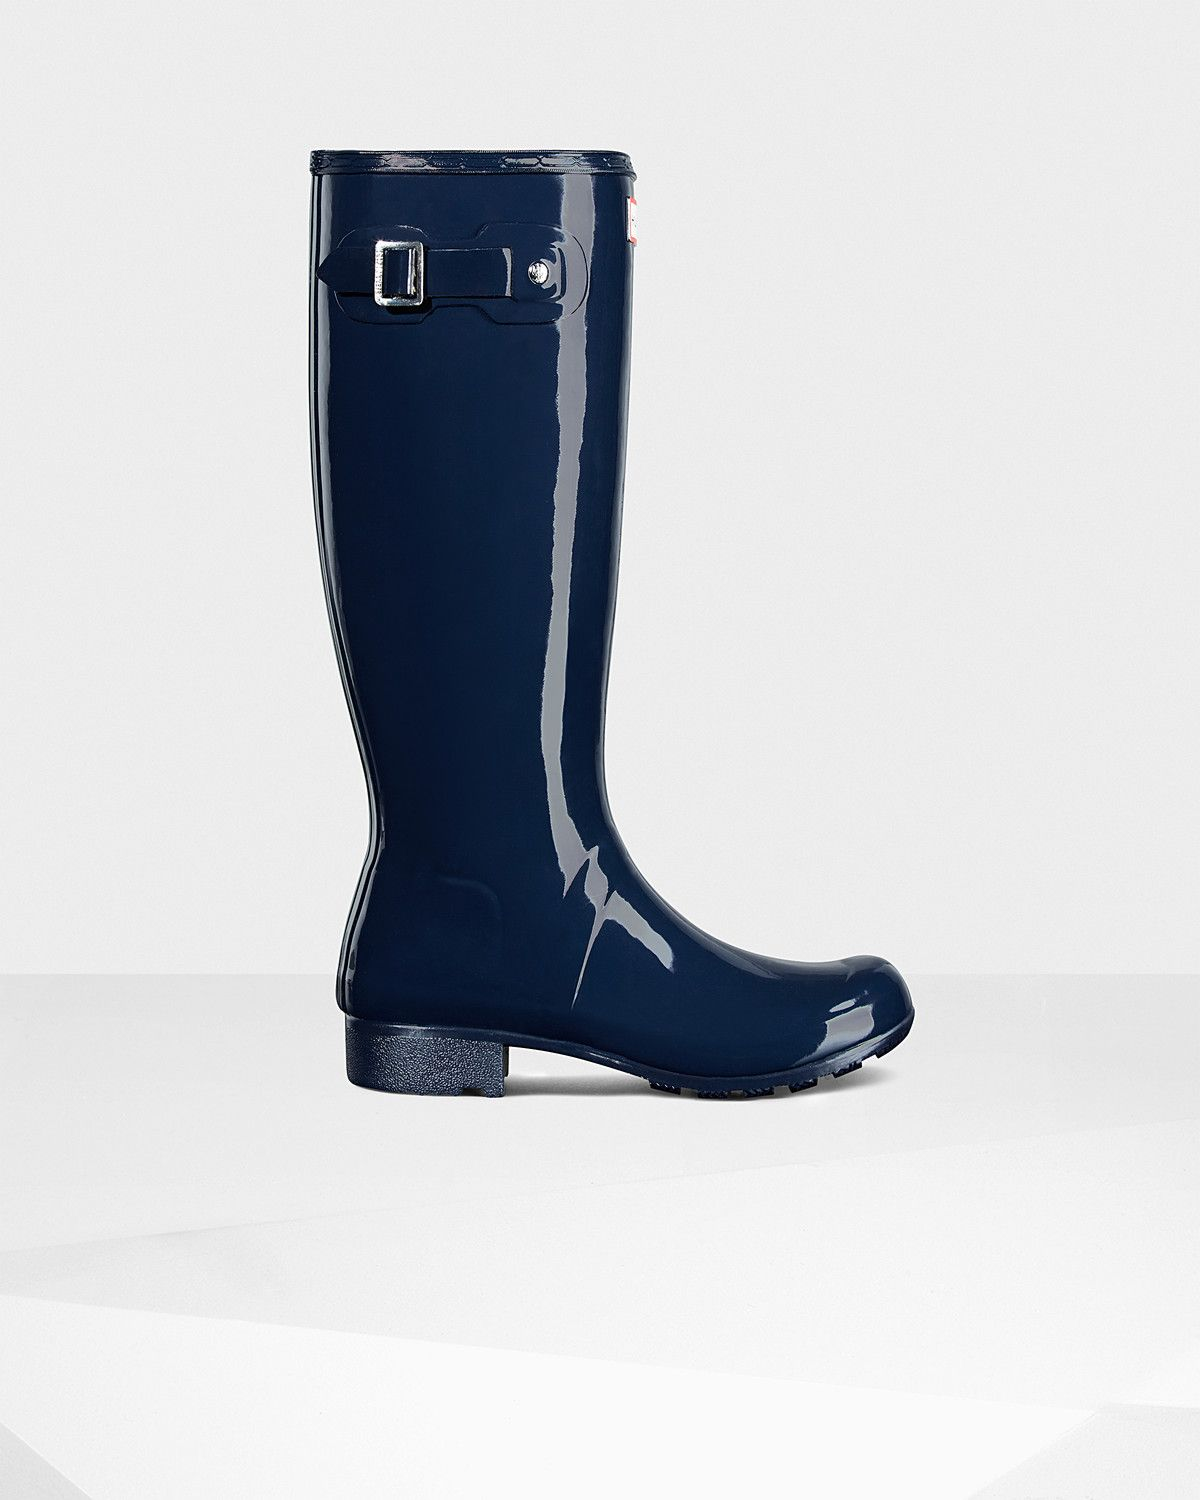 The Original Tour Gloss is an innovative remodelling of our iconic Original boot.